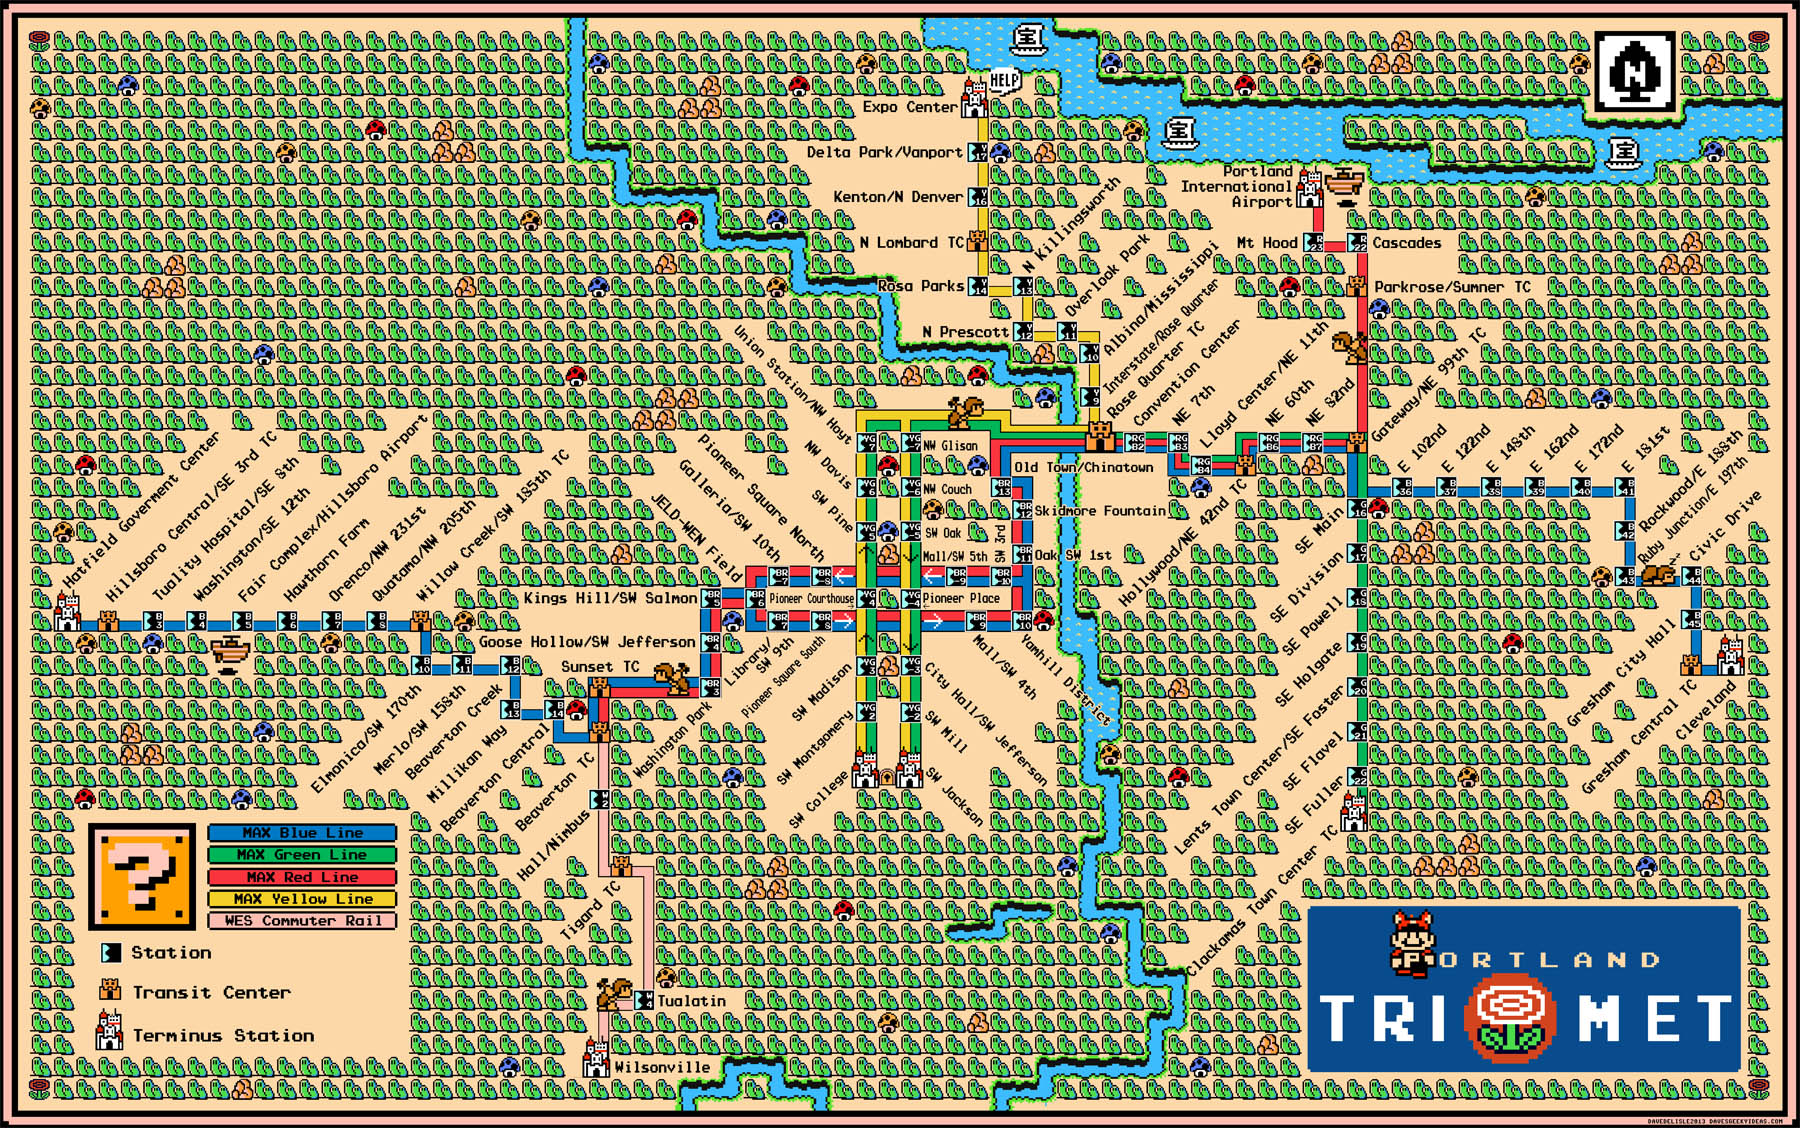 Portland s MAX LRT Map Super Mario 3 Style Dave 39 s Geeky Ideas